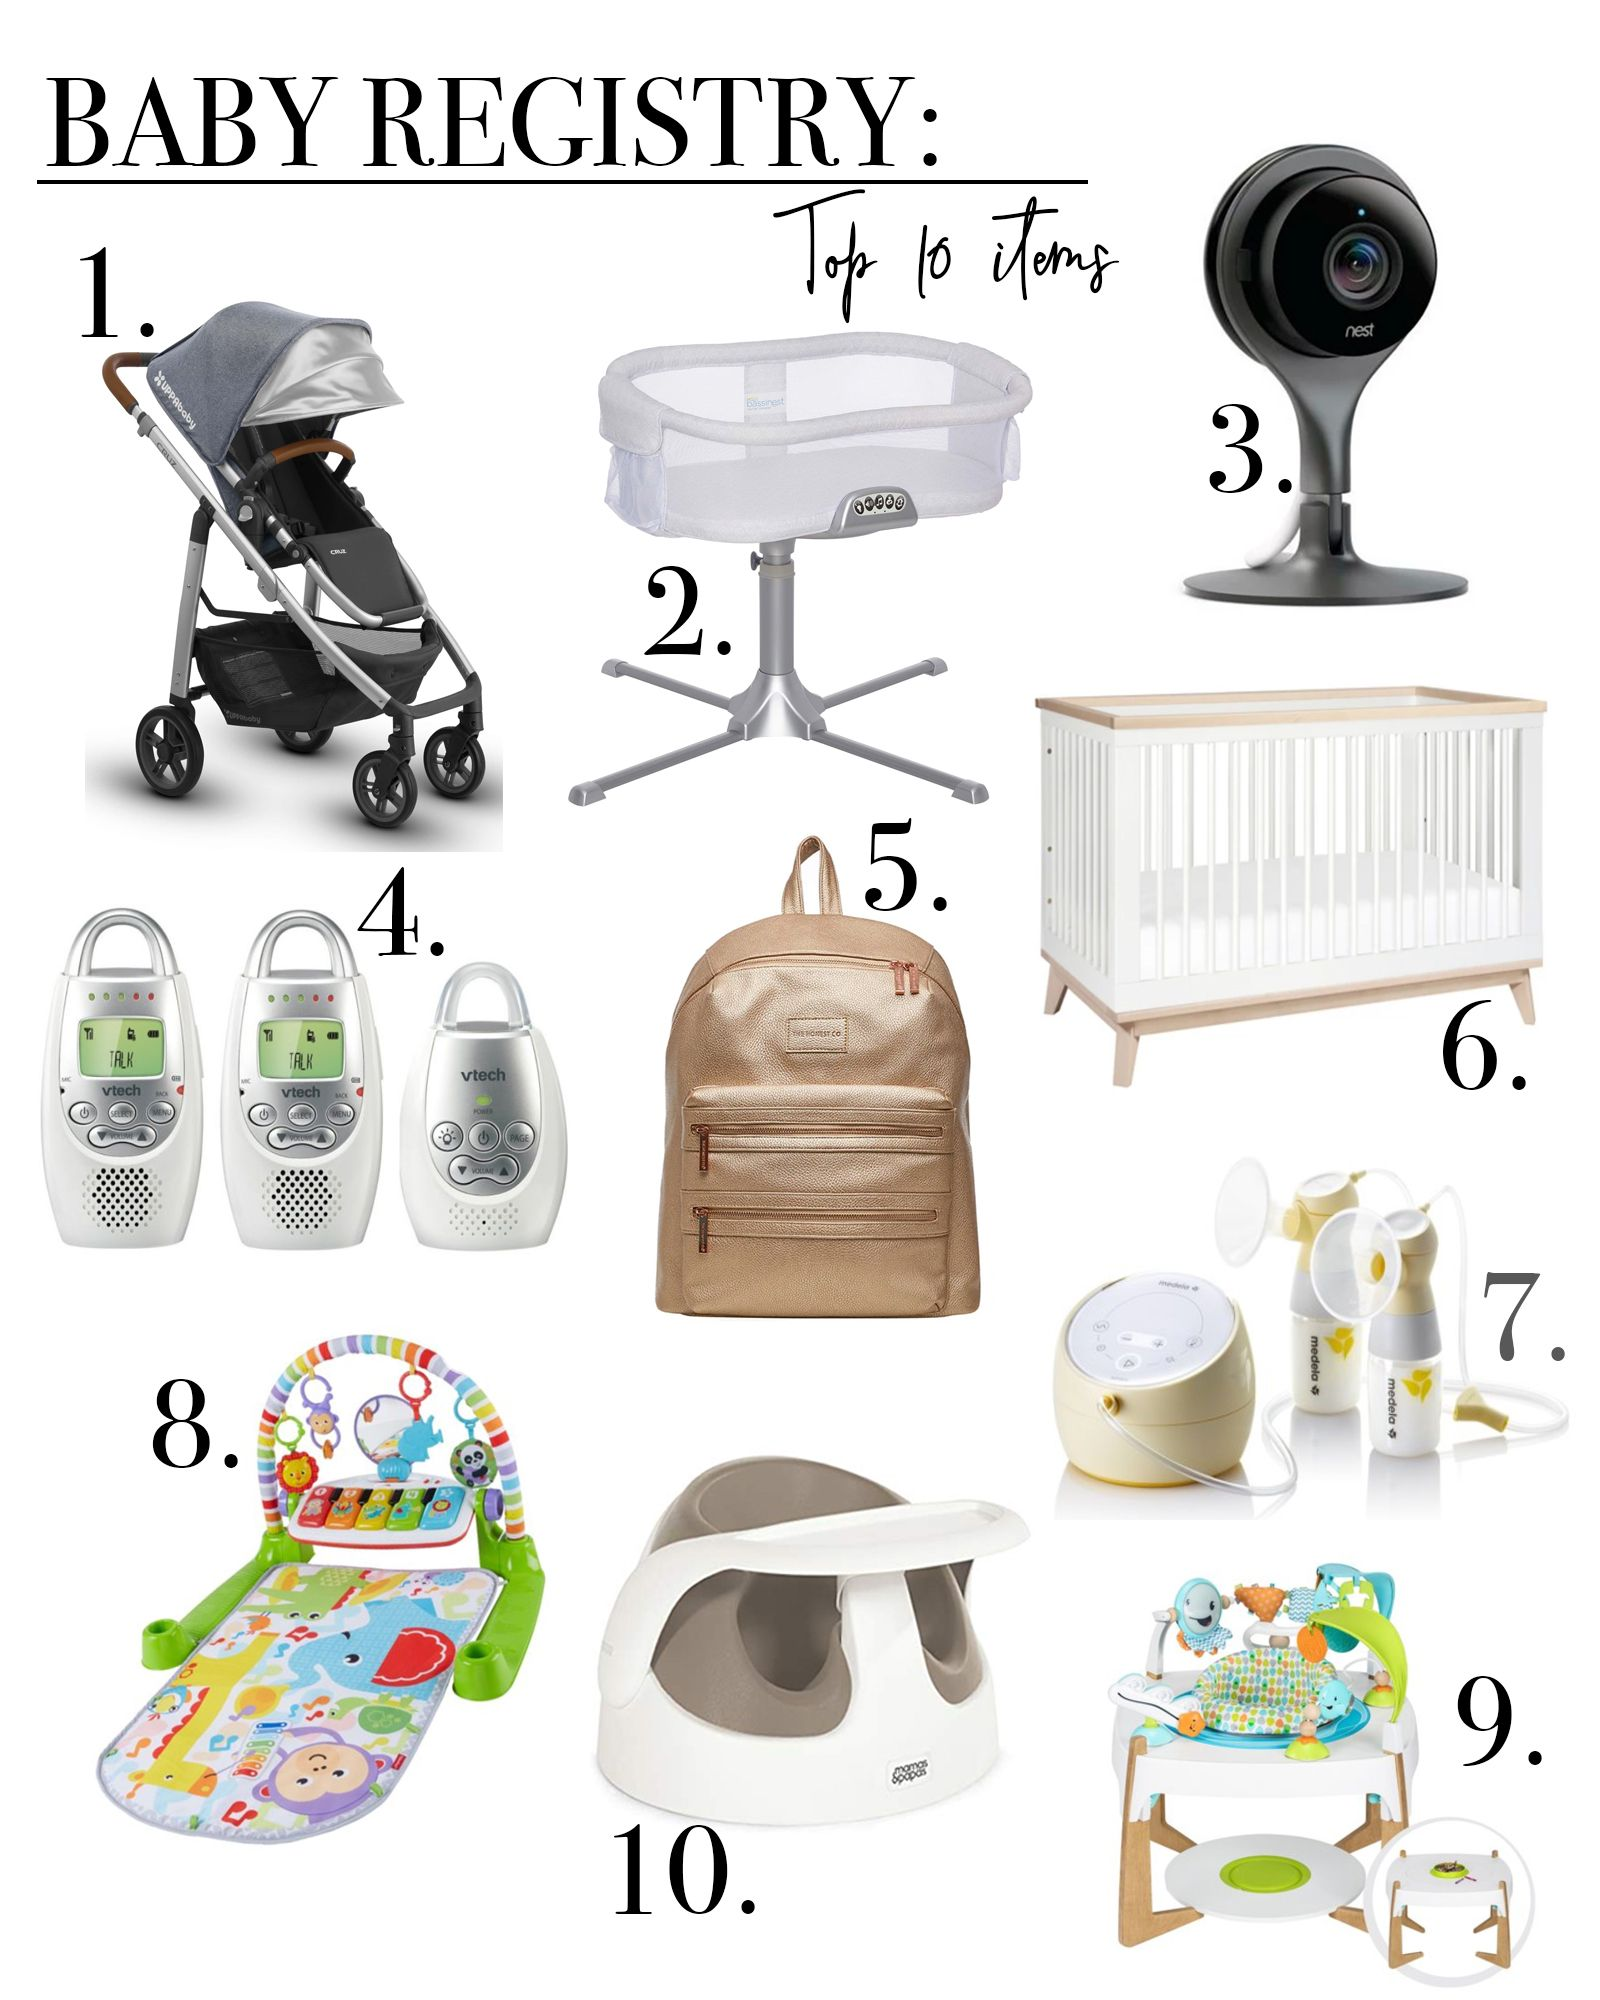 Top 10 Baby Registry Items Chic Talk Baby Registry Baby Registry Items Best Baby Registry